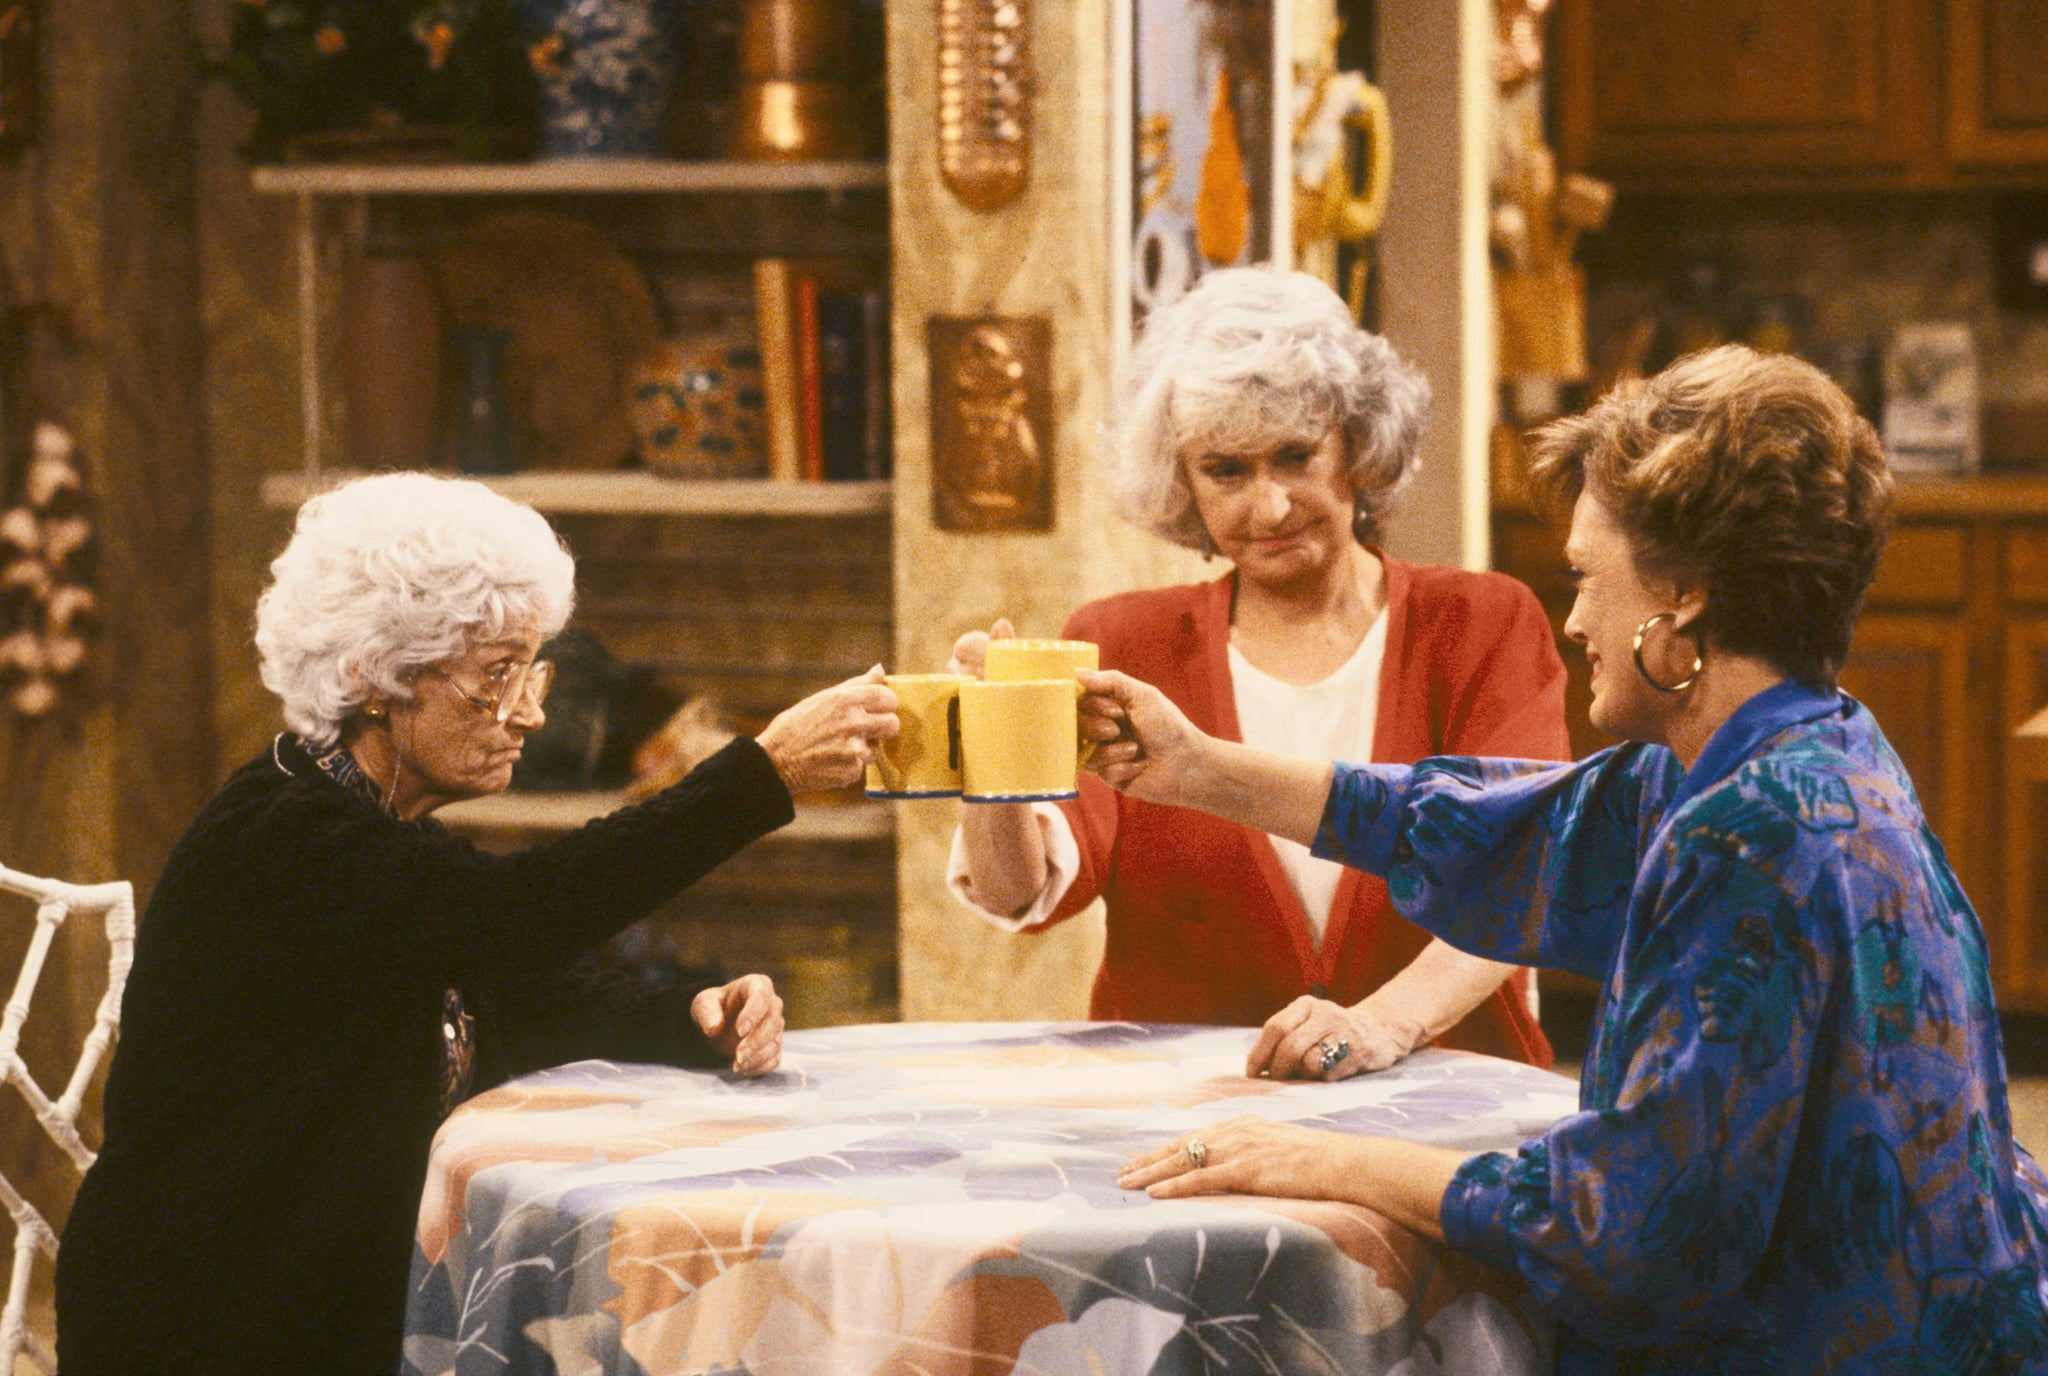 THE GOLDEN GIRLS, l-r: Estelle Getty, Bea Arthur, Rue McClanahan, 1985-1992. Touchstone Television/courtesy Everett Collection